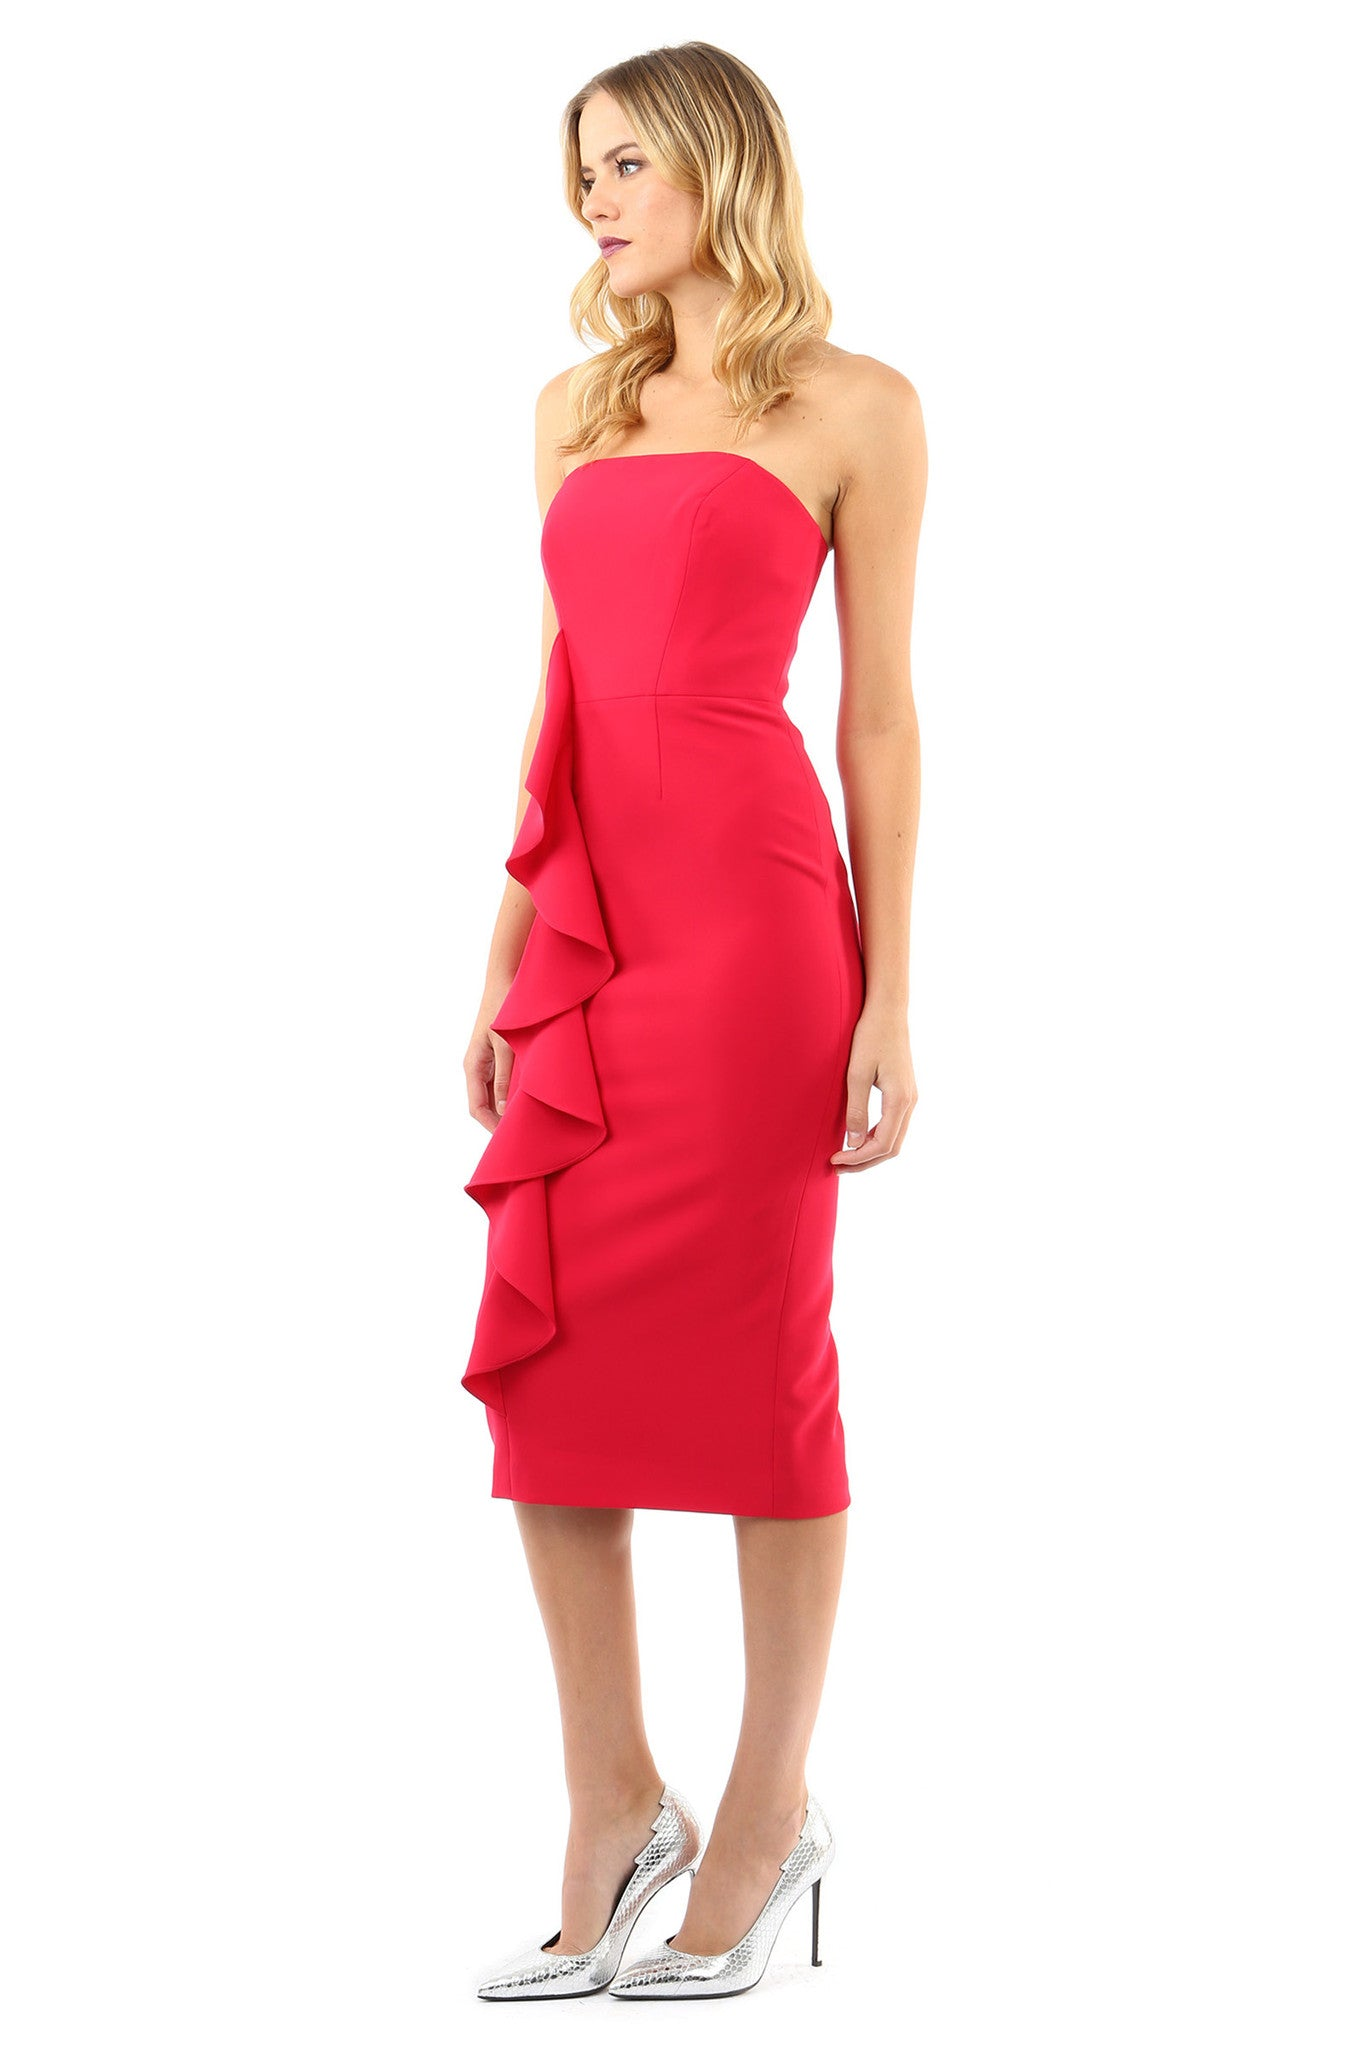 Jay Godfrey Rose Strapless Ruffle Dress - Side View